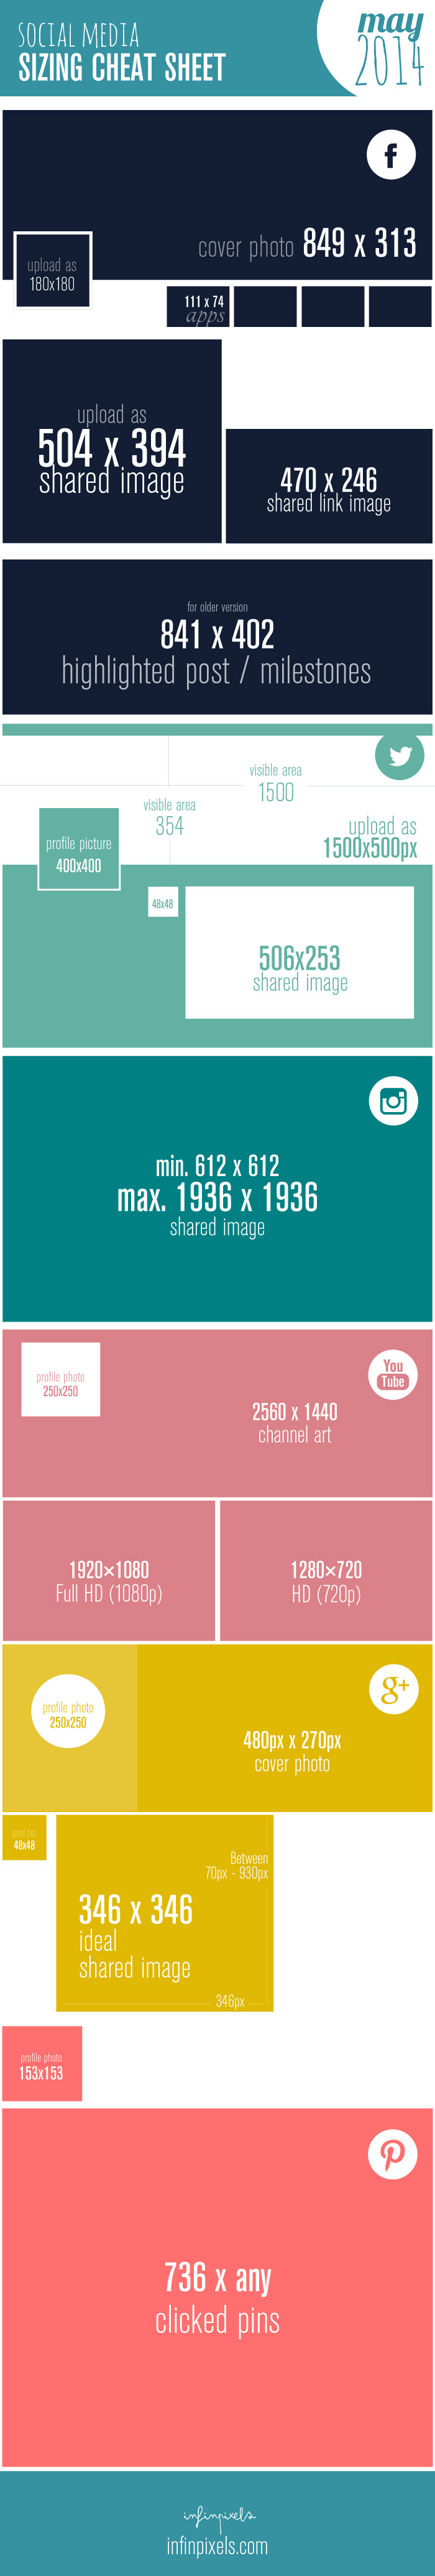 Social media image sizes by infiinpixels